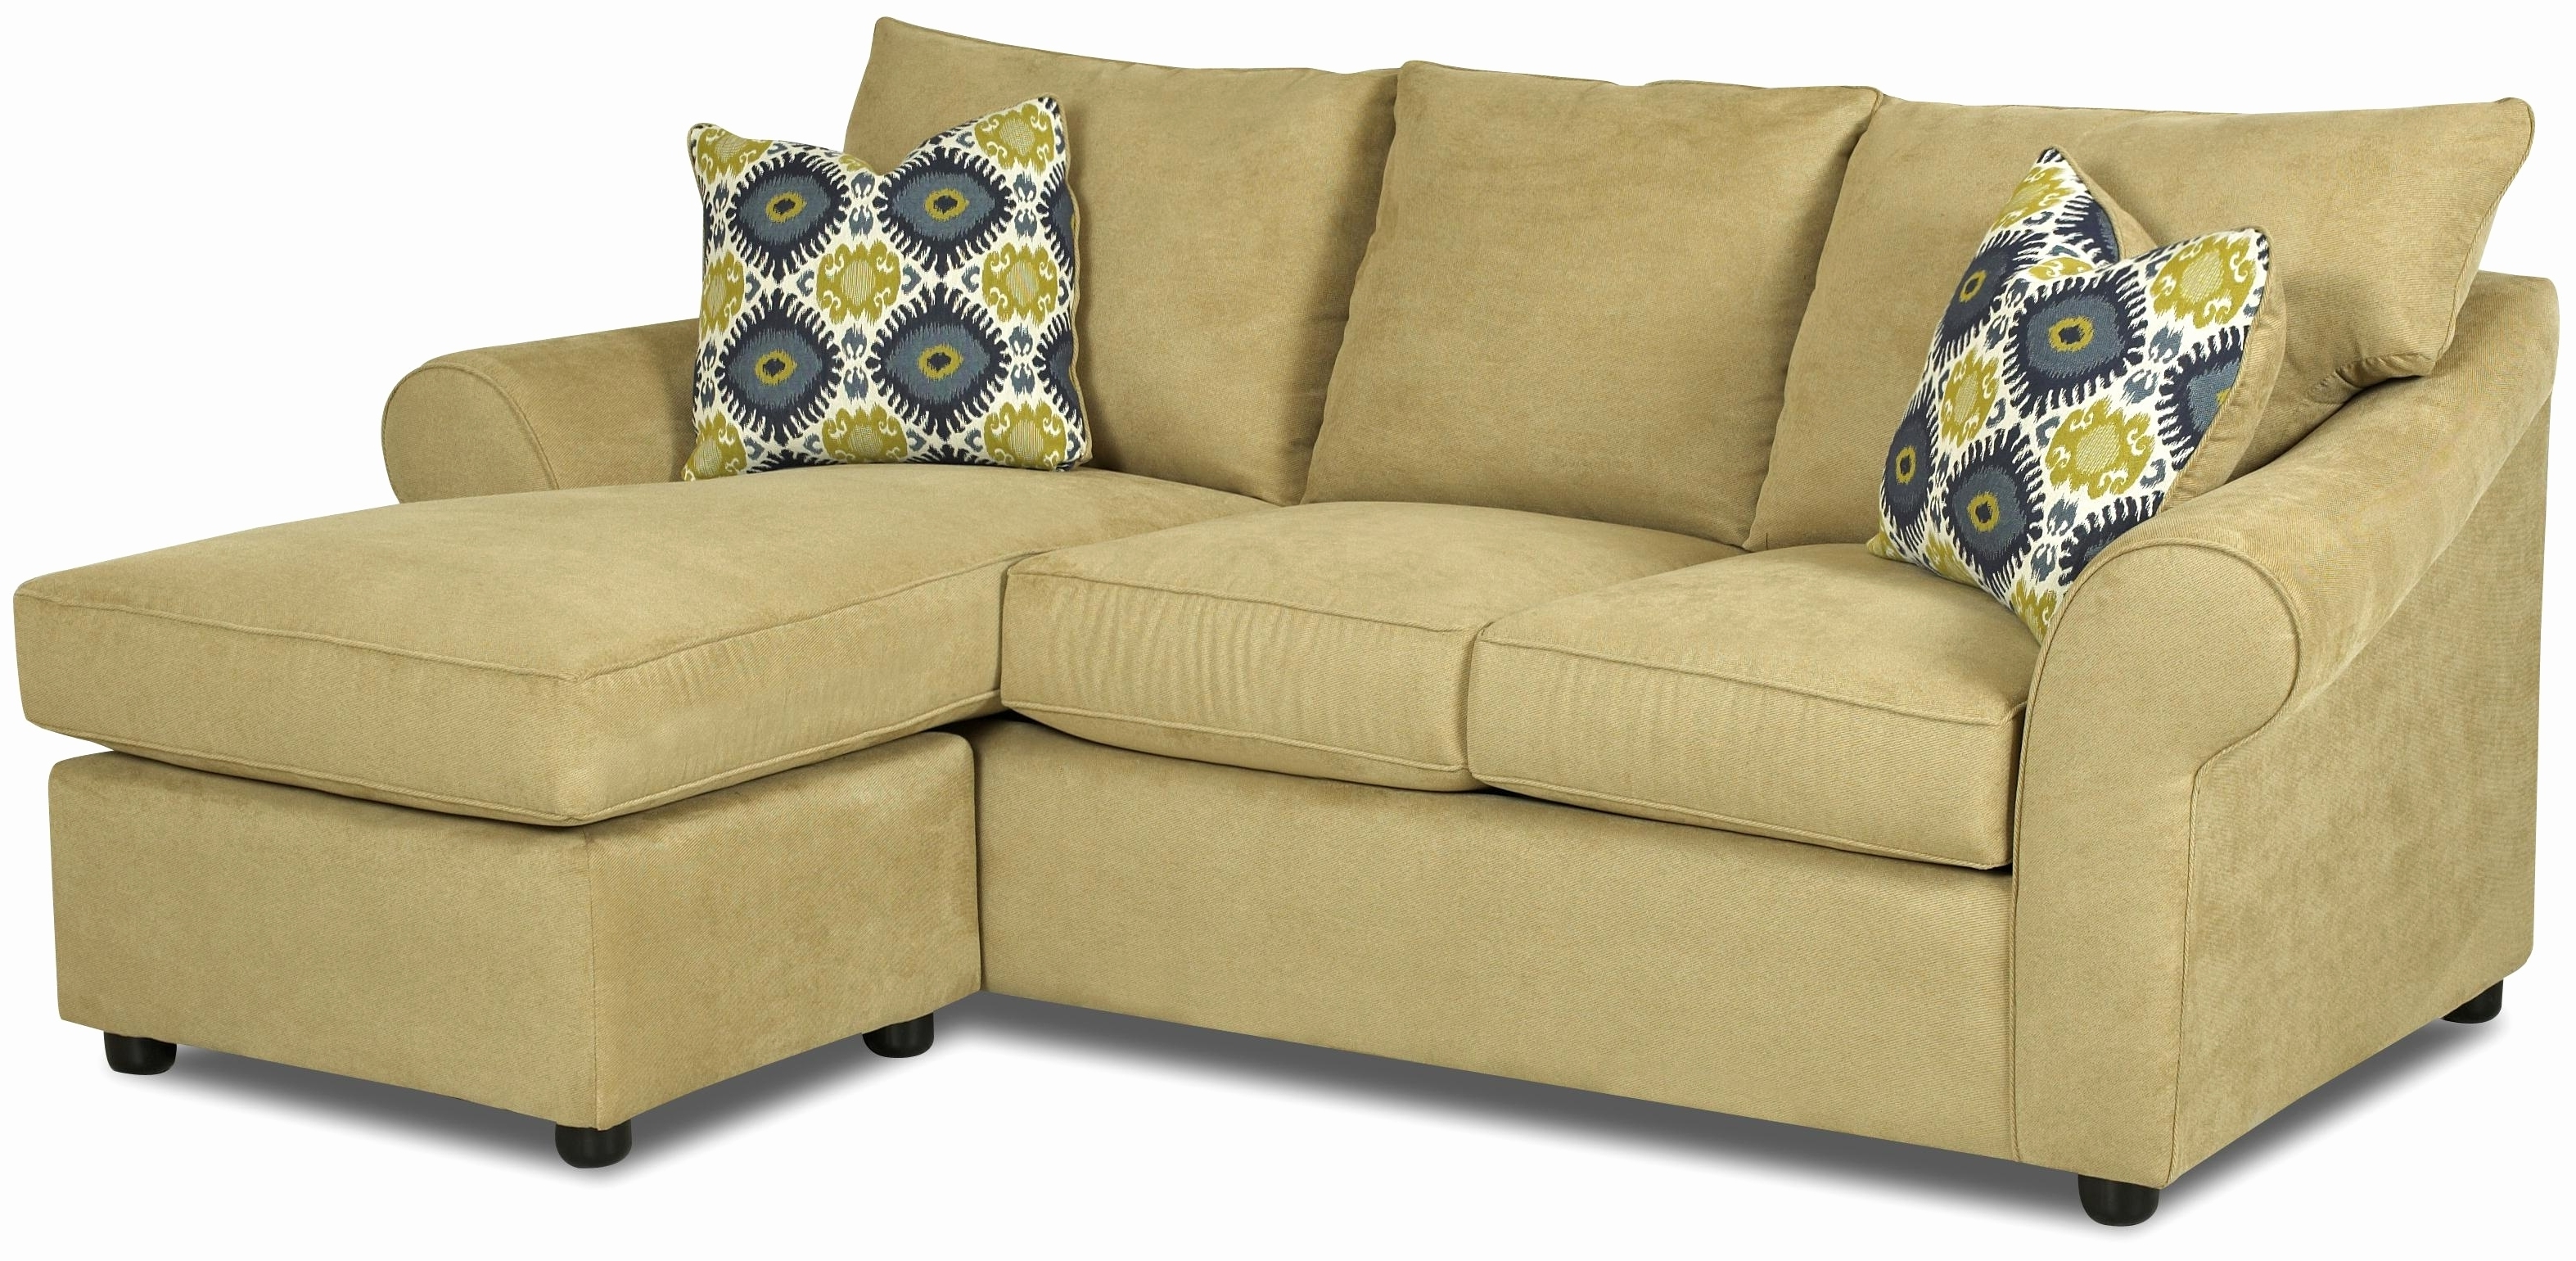 2018 New Sofa With 2 Chaise Lounge 2018 – Couches And Sofas Ideas With Small Chaise Lounges (View 11 of 15)